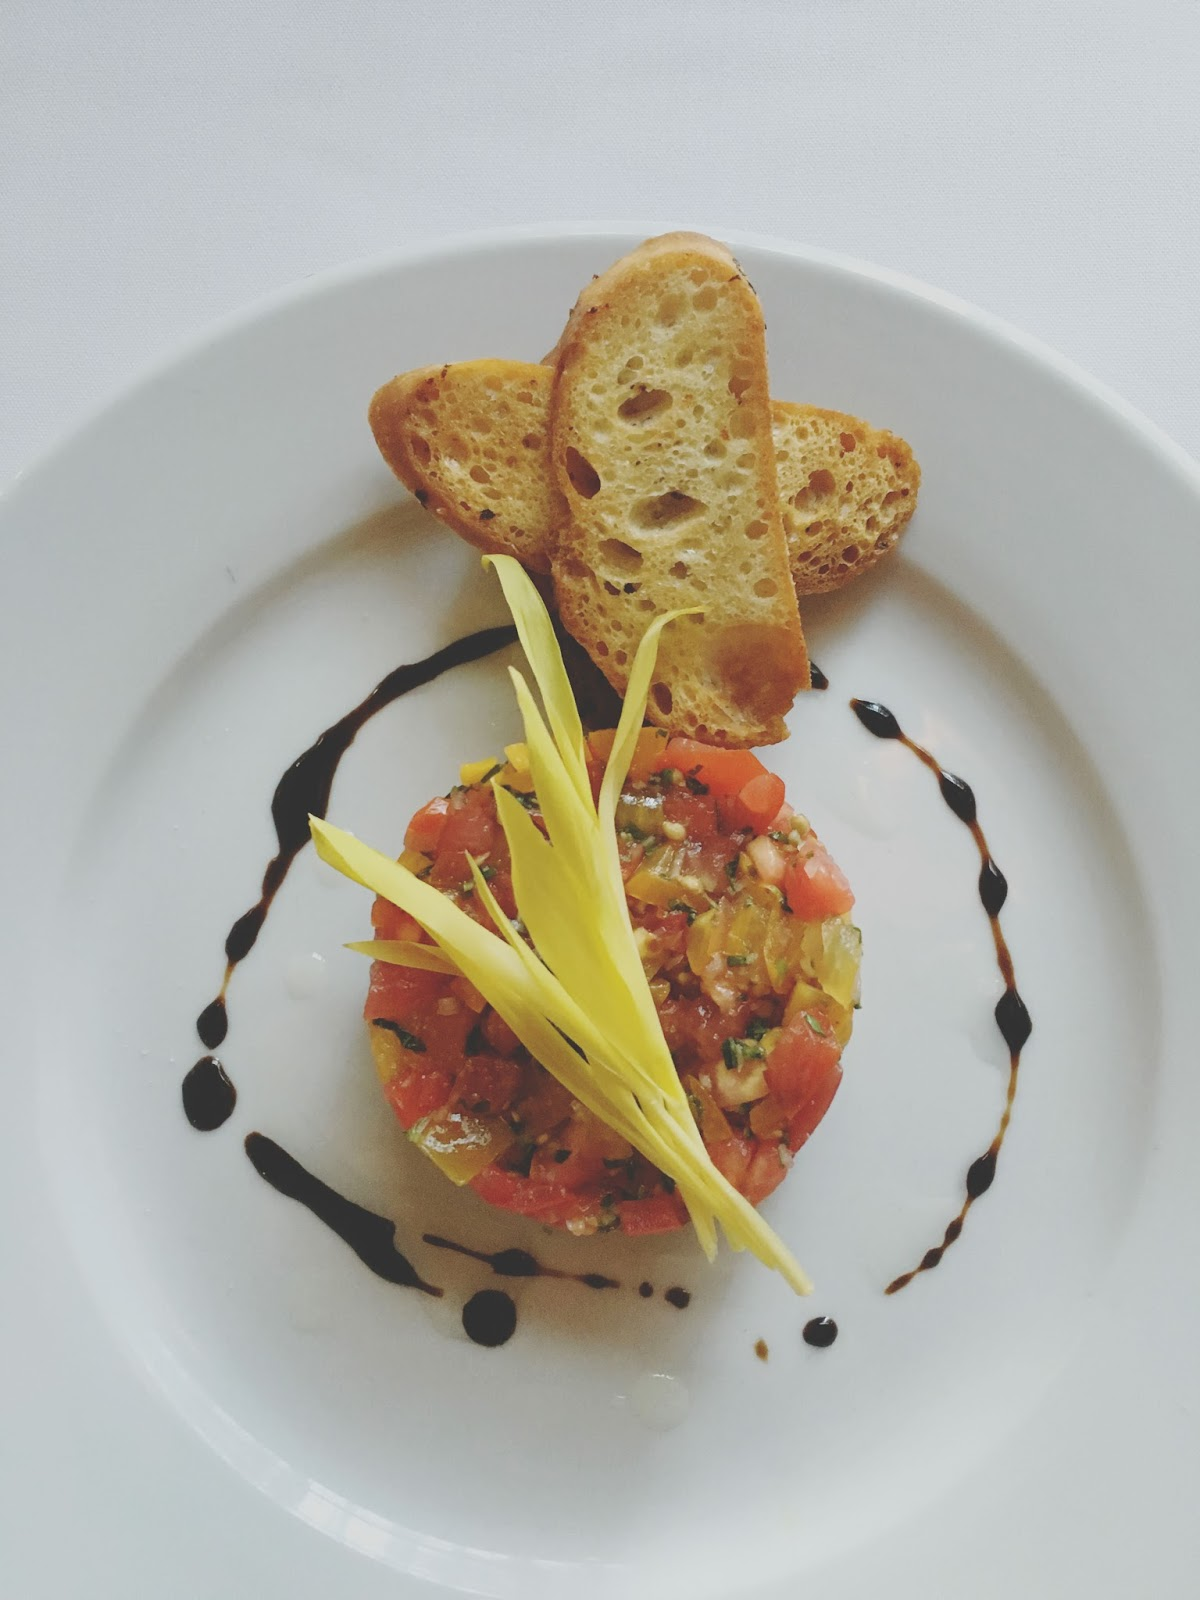 tomato tartare at Eddie V's - A restaurant in Houston, Texas